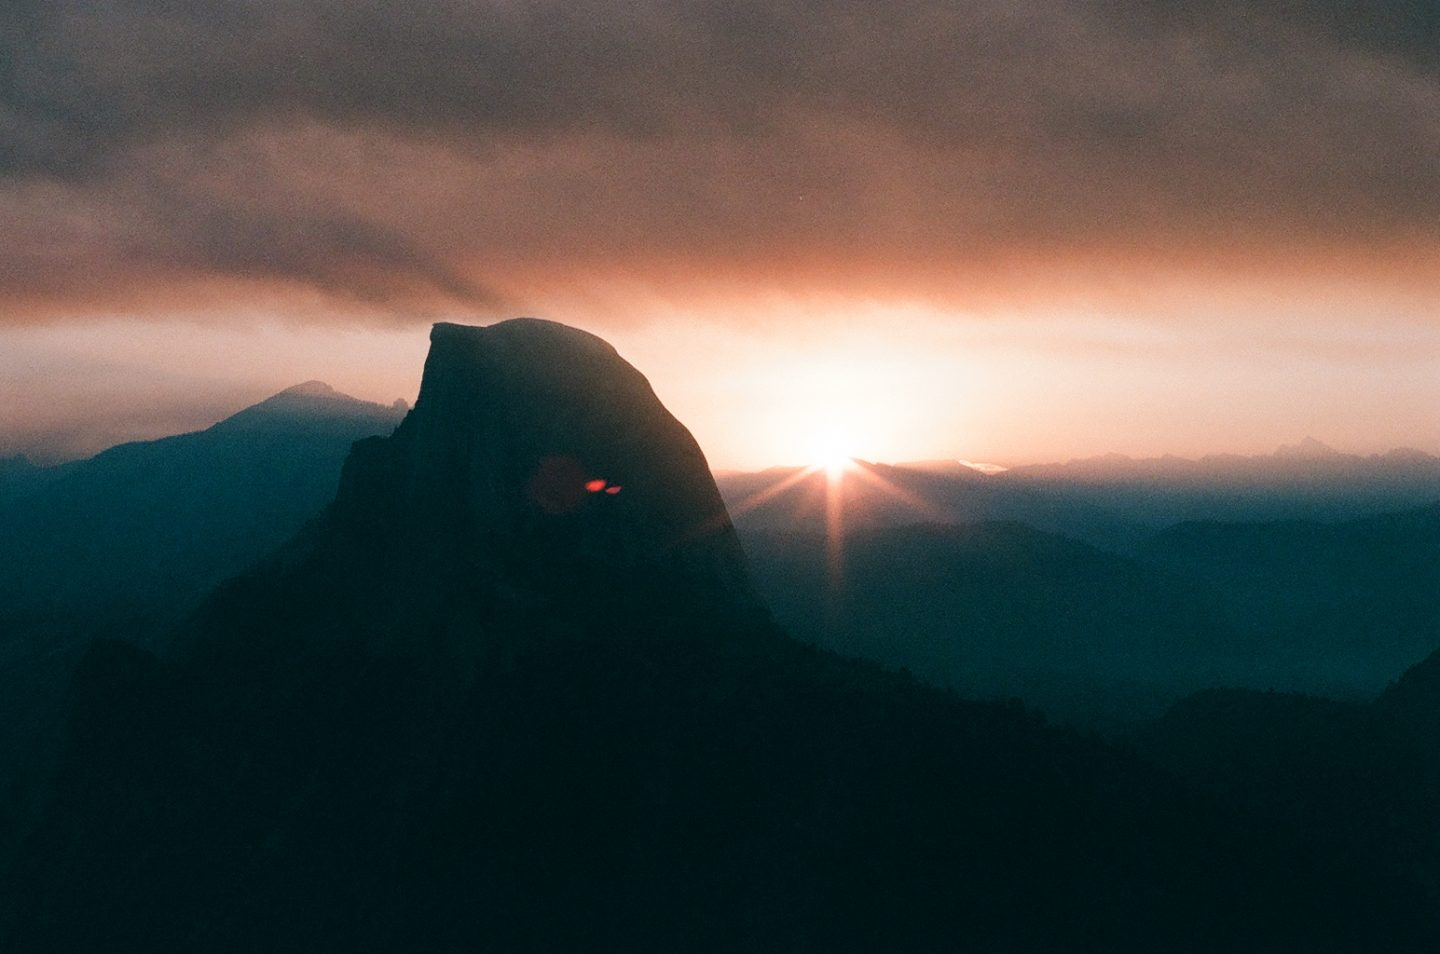 Wildfire sunrise at Yosemite